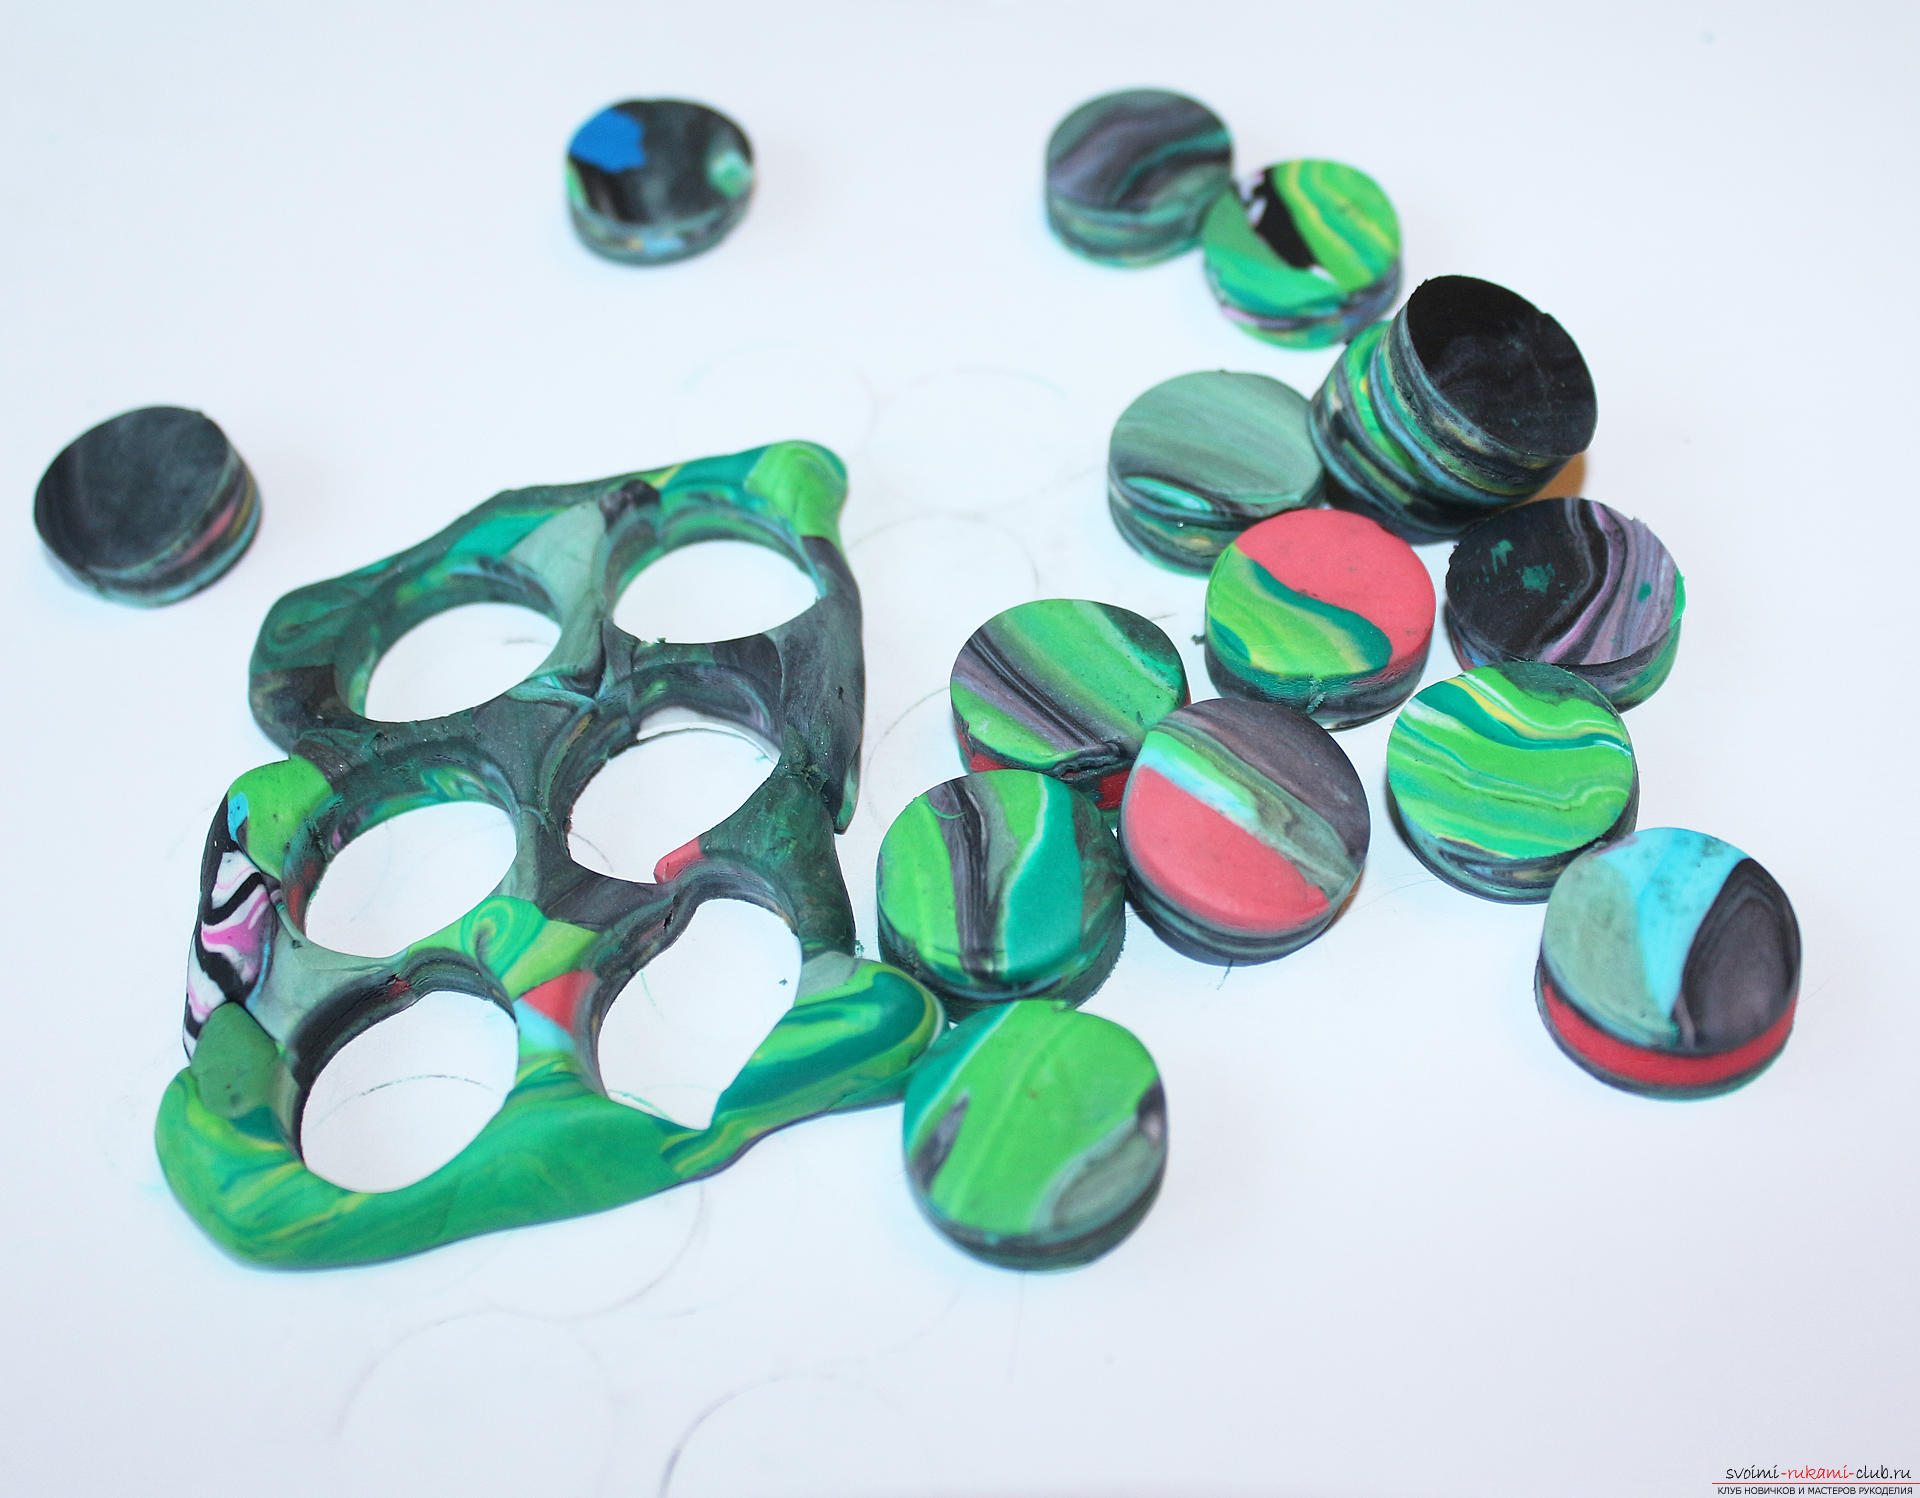 This detailed master class contains technique for working with polymer clay and will teach how to create beads from polymer clay .. Photo # 18